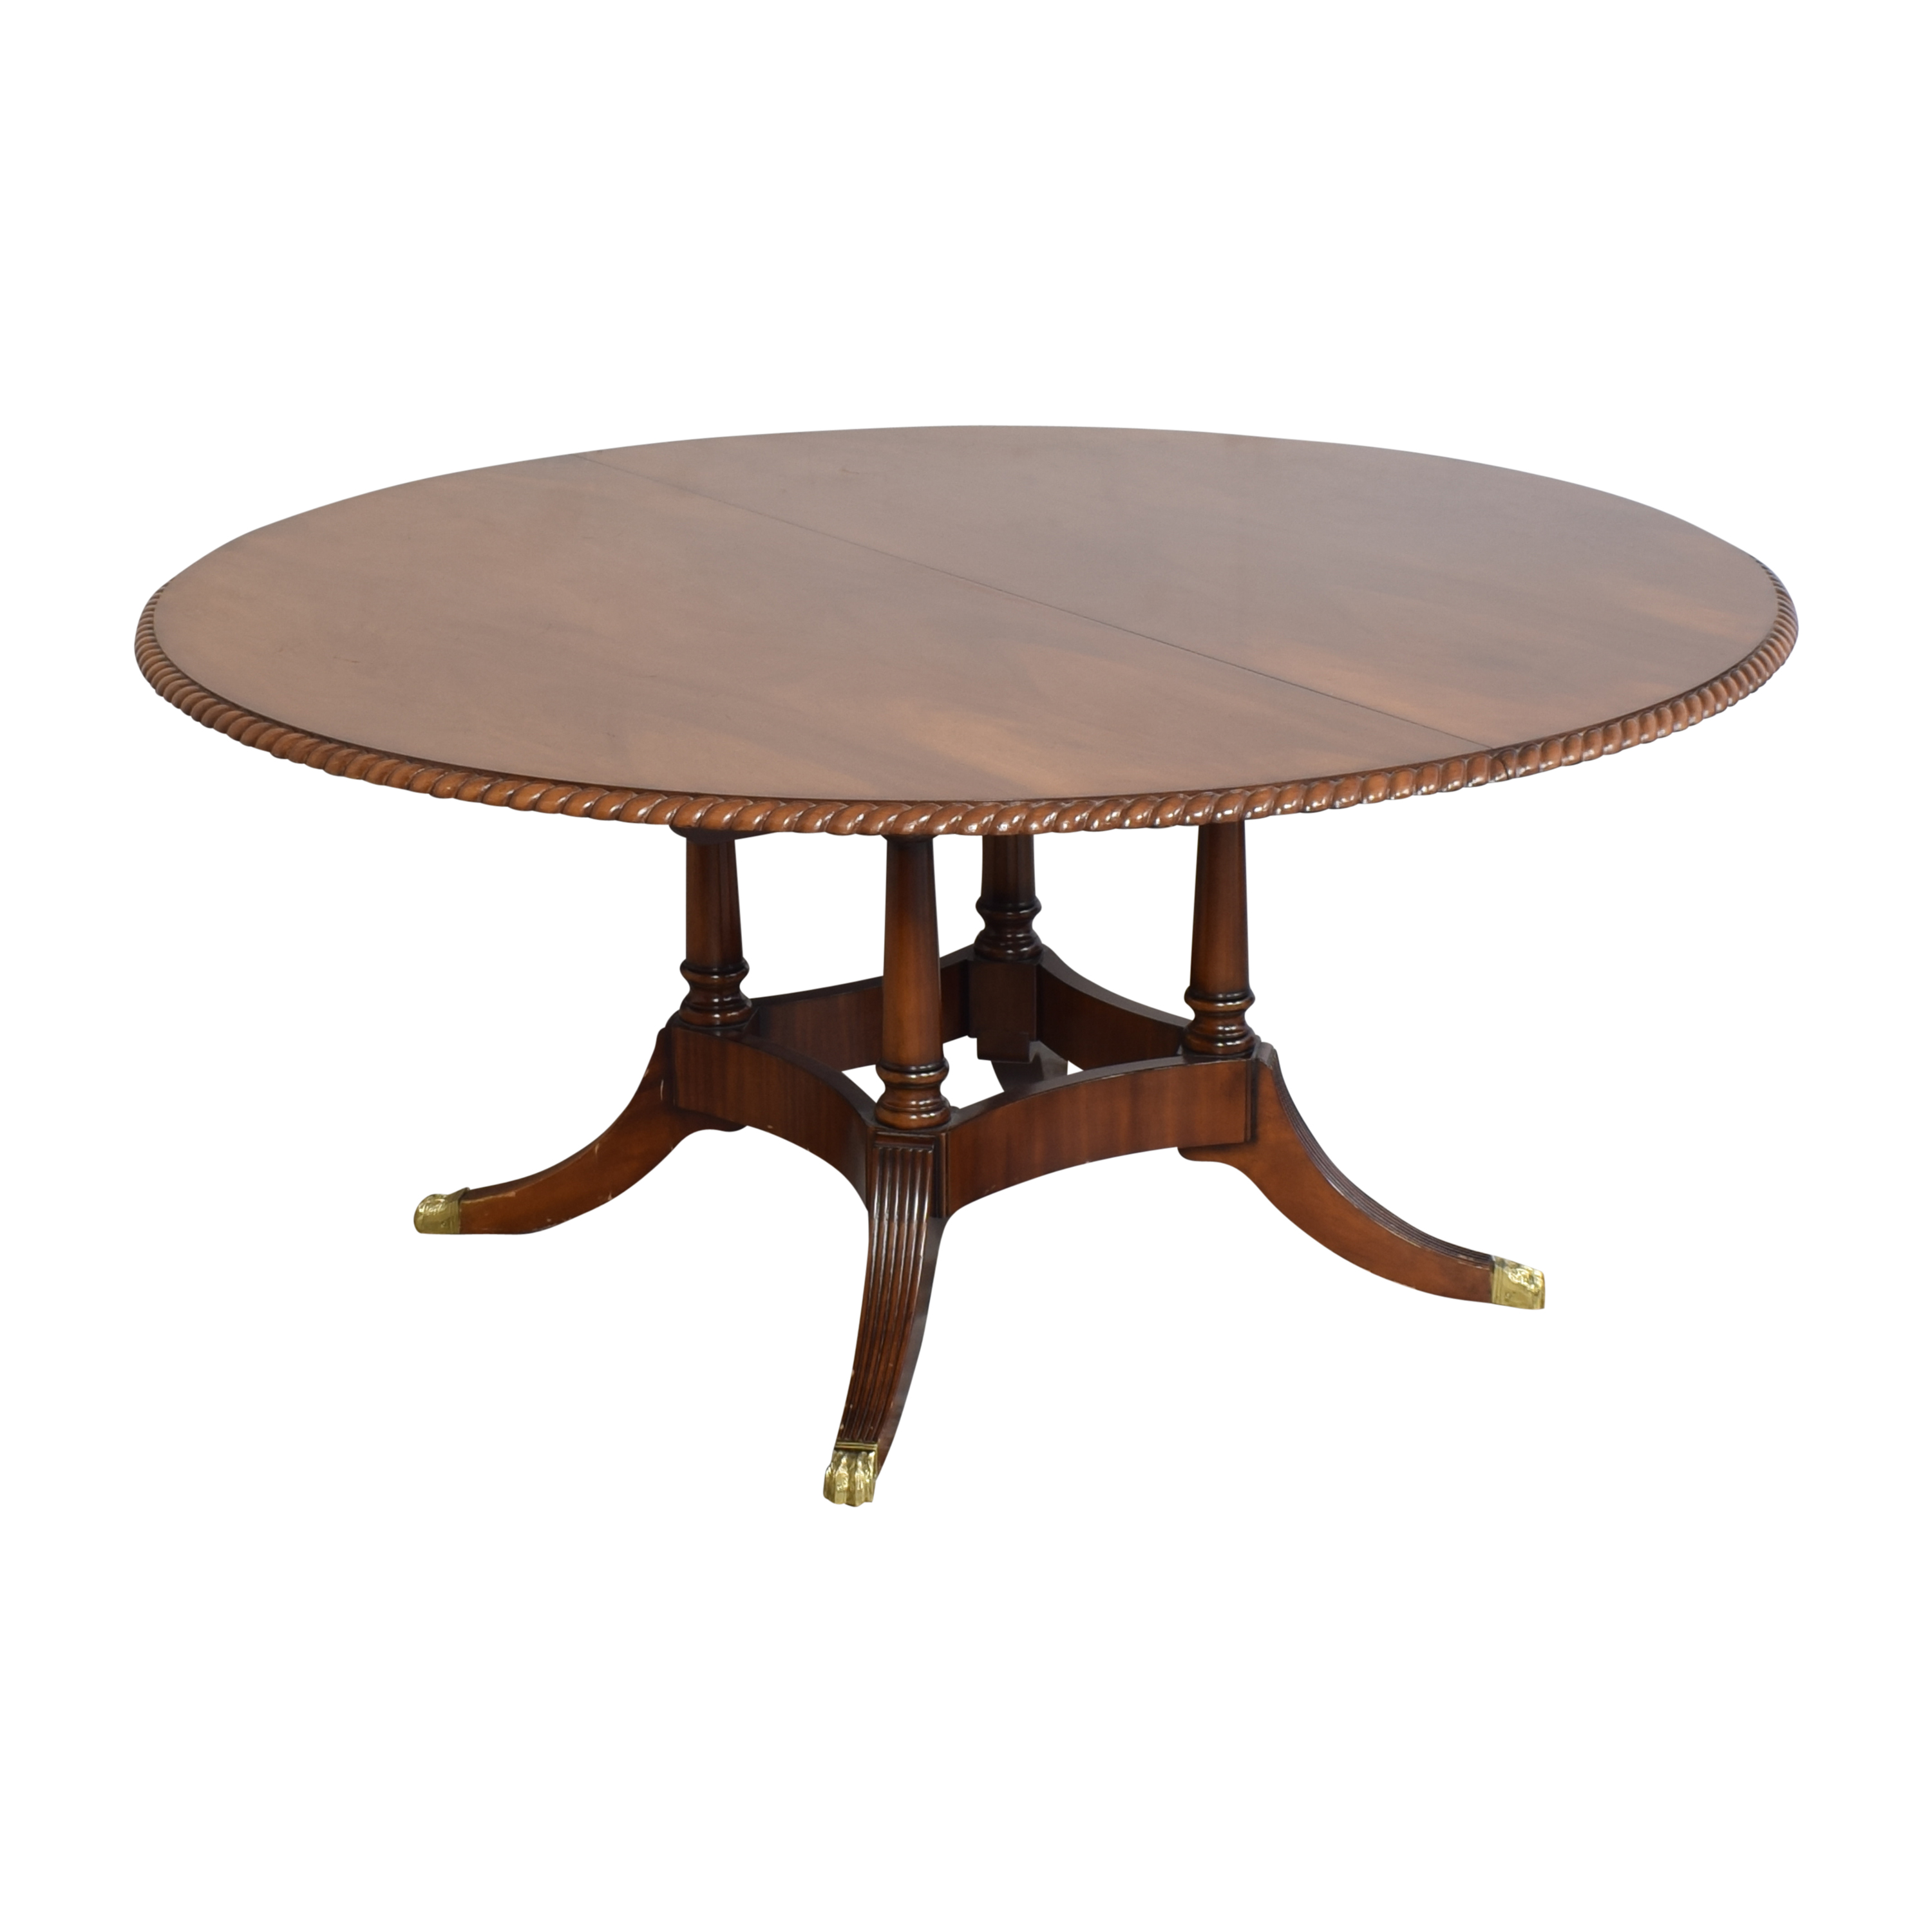 Walter of Wabash Walter of Wabash Extendable Dining Table